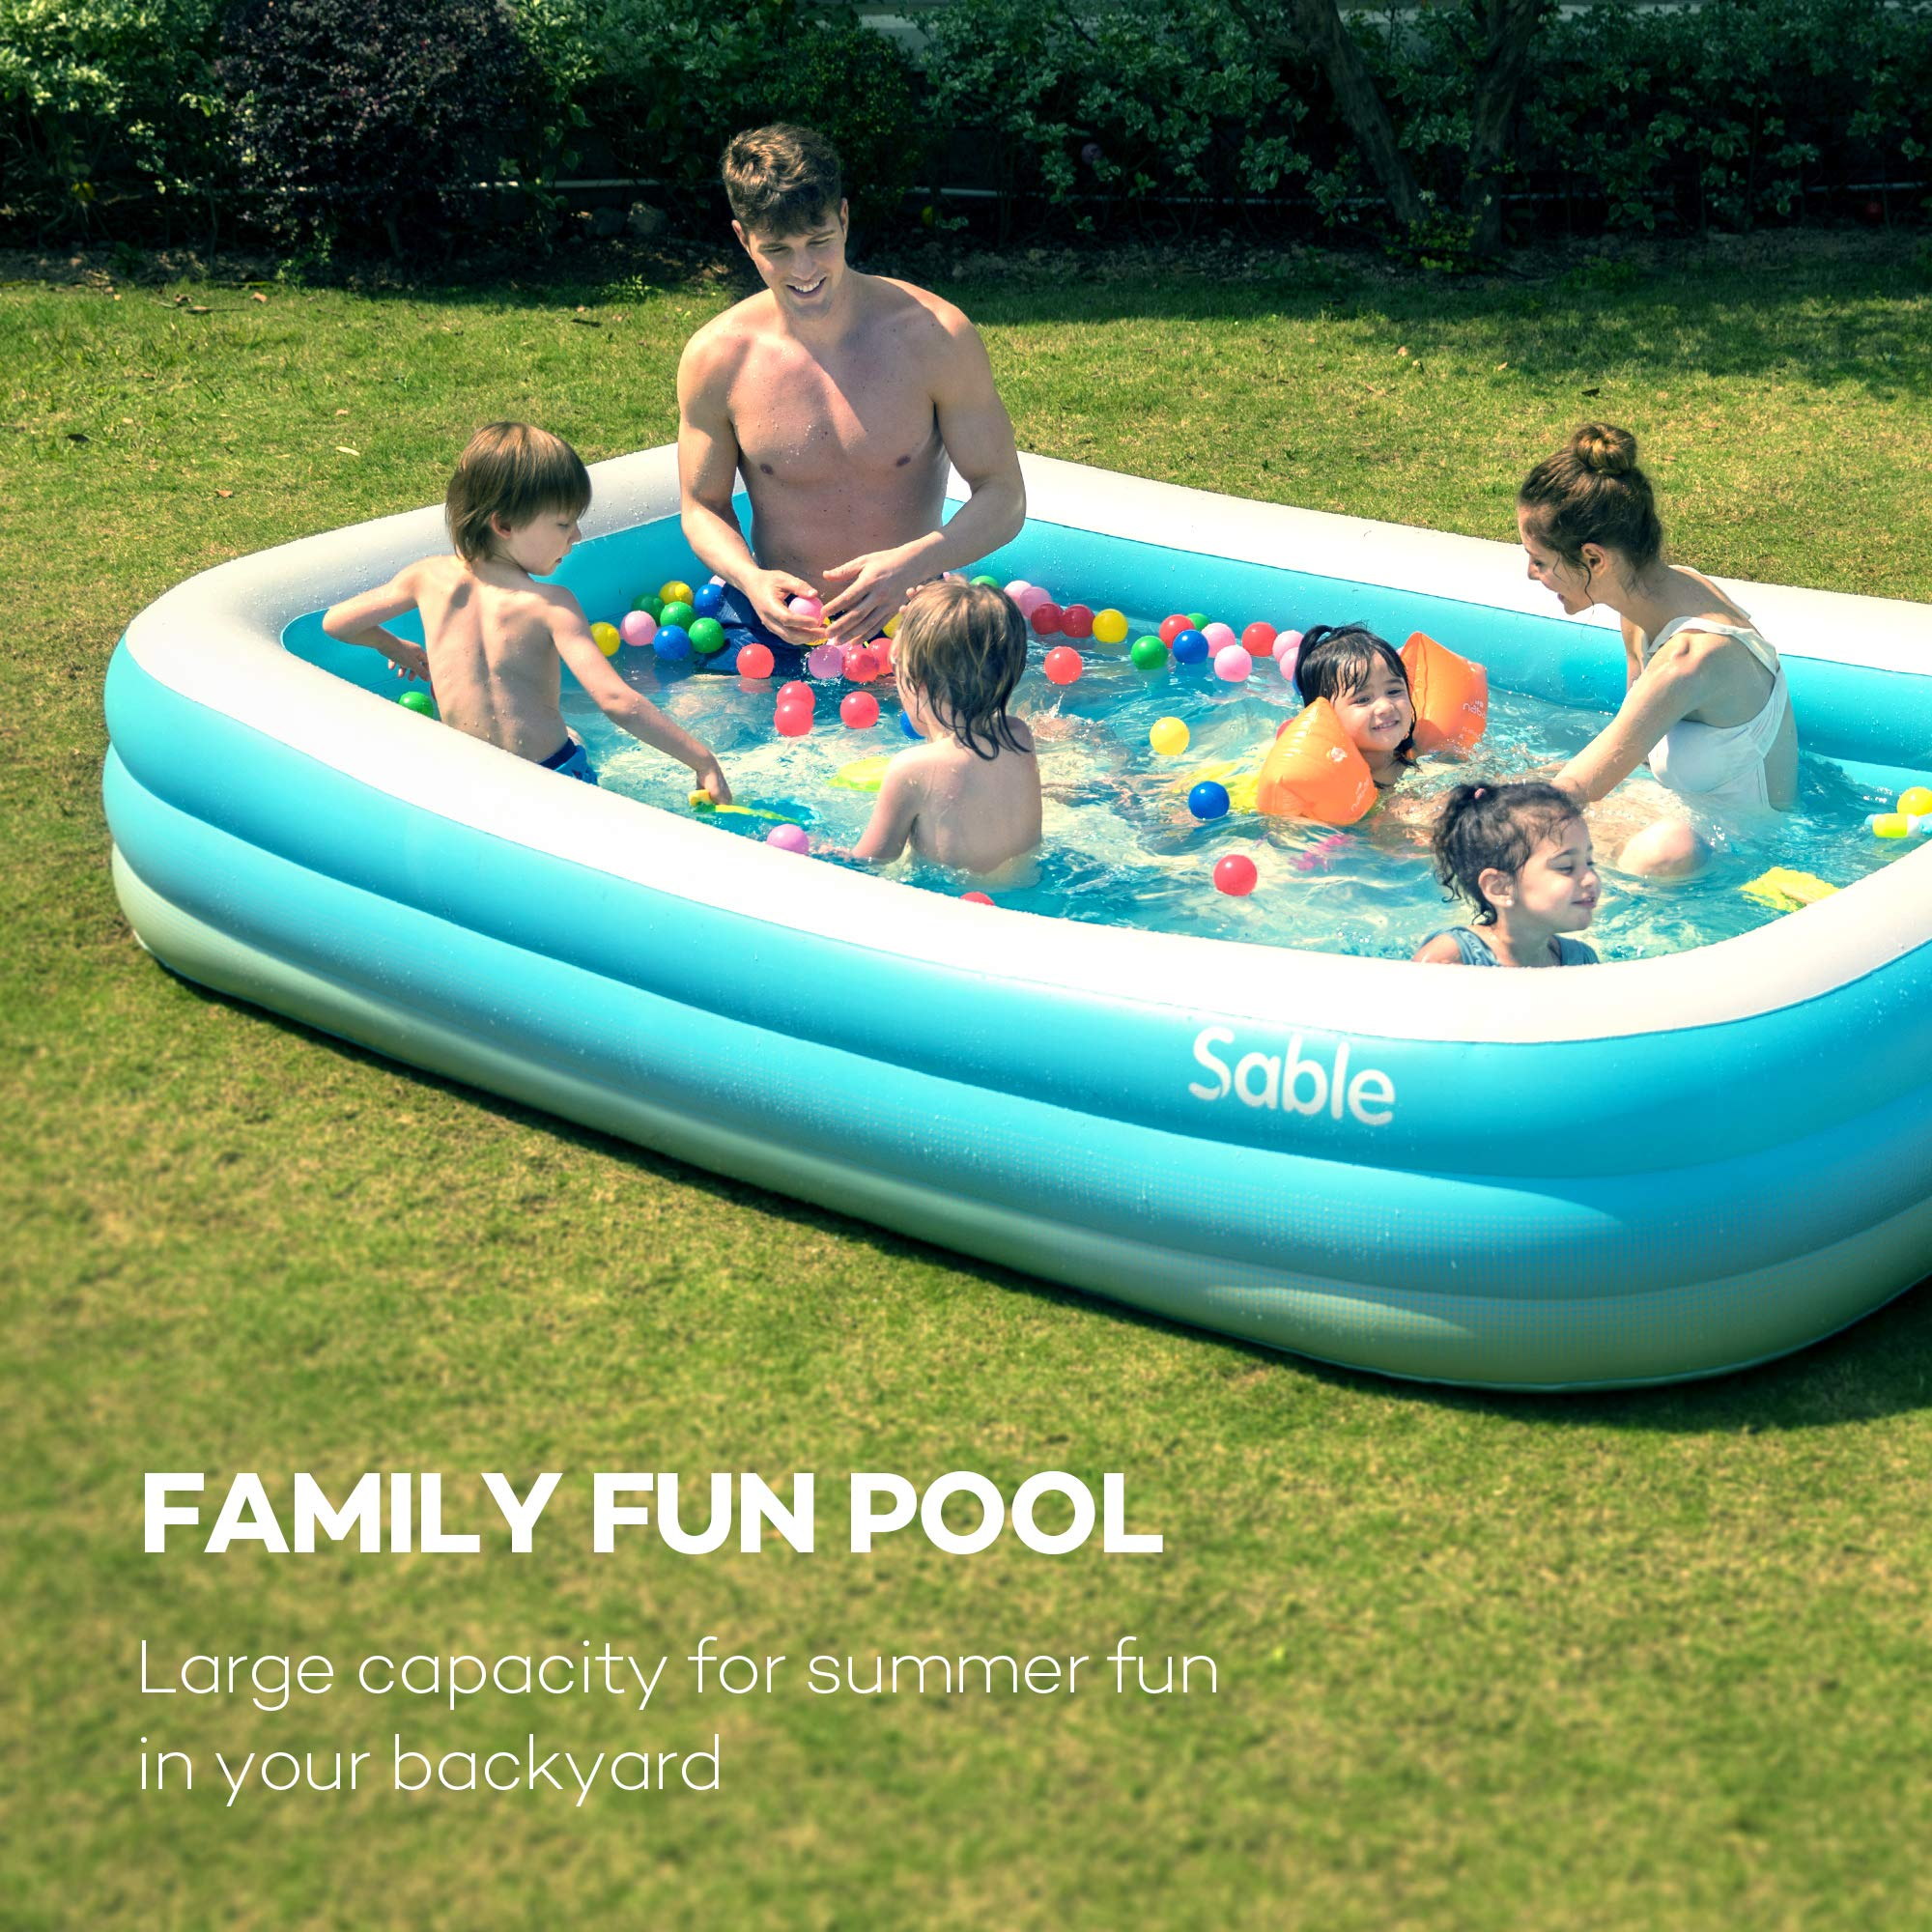 Inflatable Pool, Sable Swimming Pool for Baby, Kiddie, Kids, Adult, Infant, Toddler, 118'' X 72'' X 20'', for Ages 3+ by Sable (Image #2)